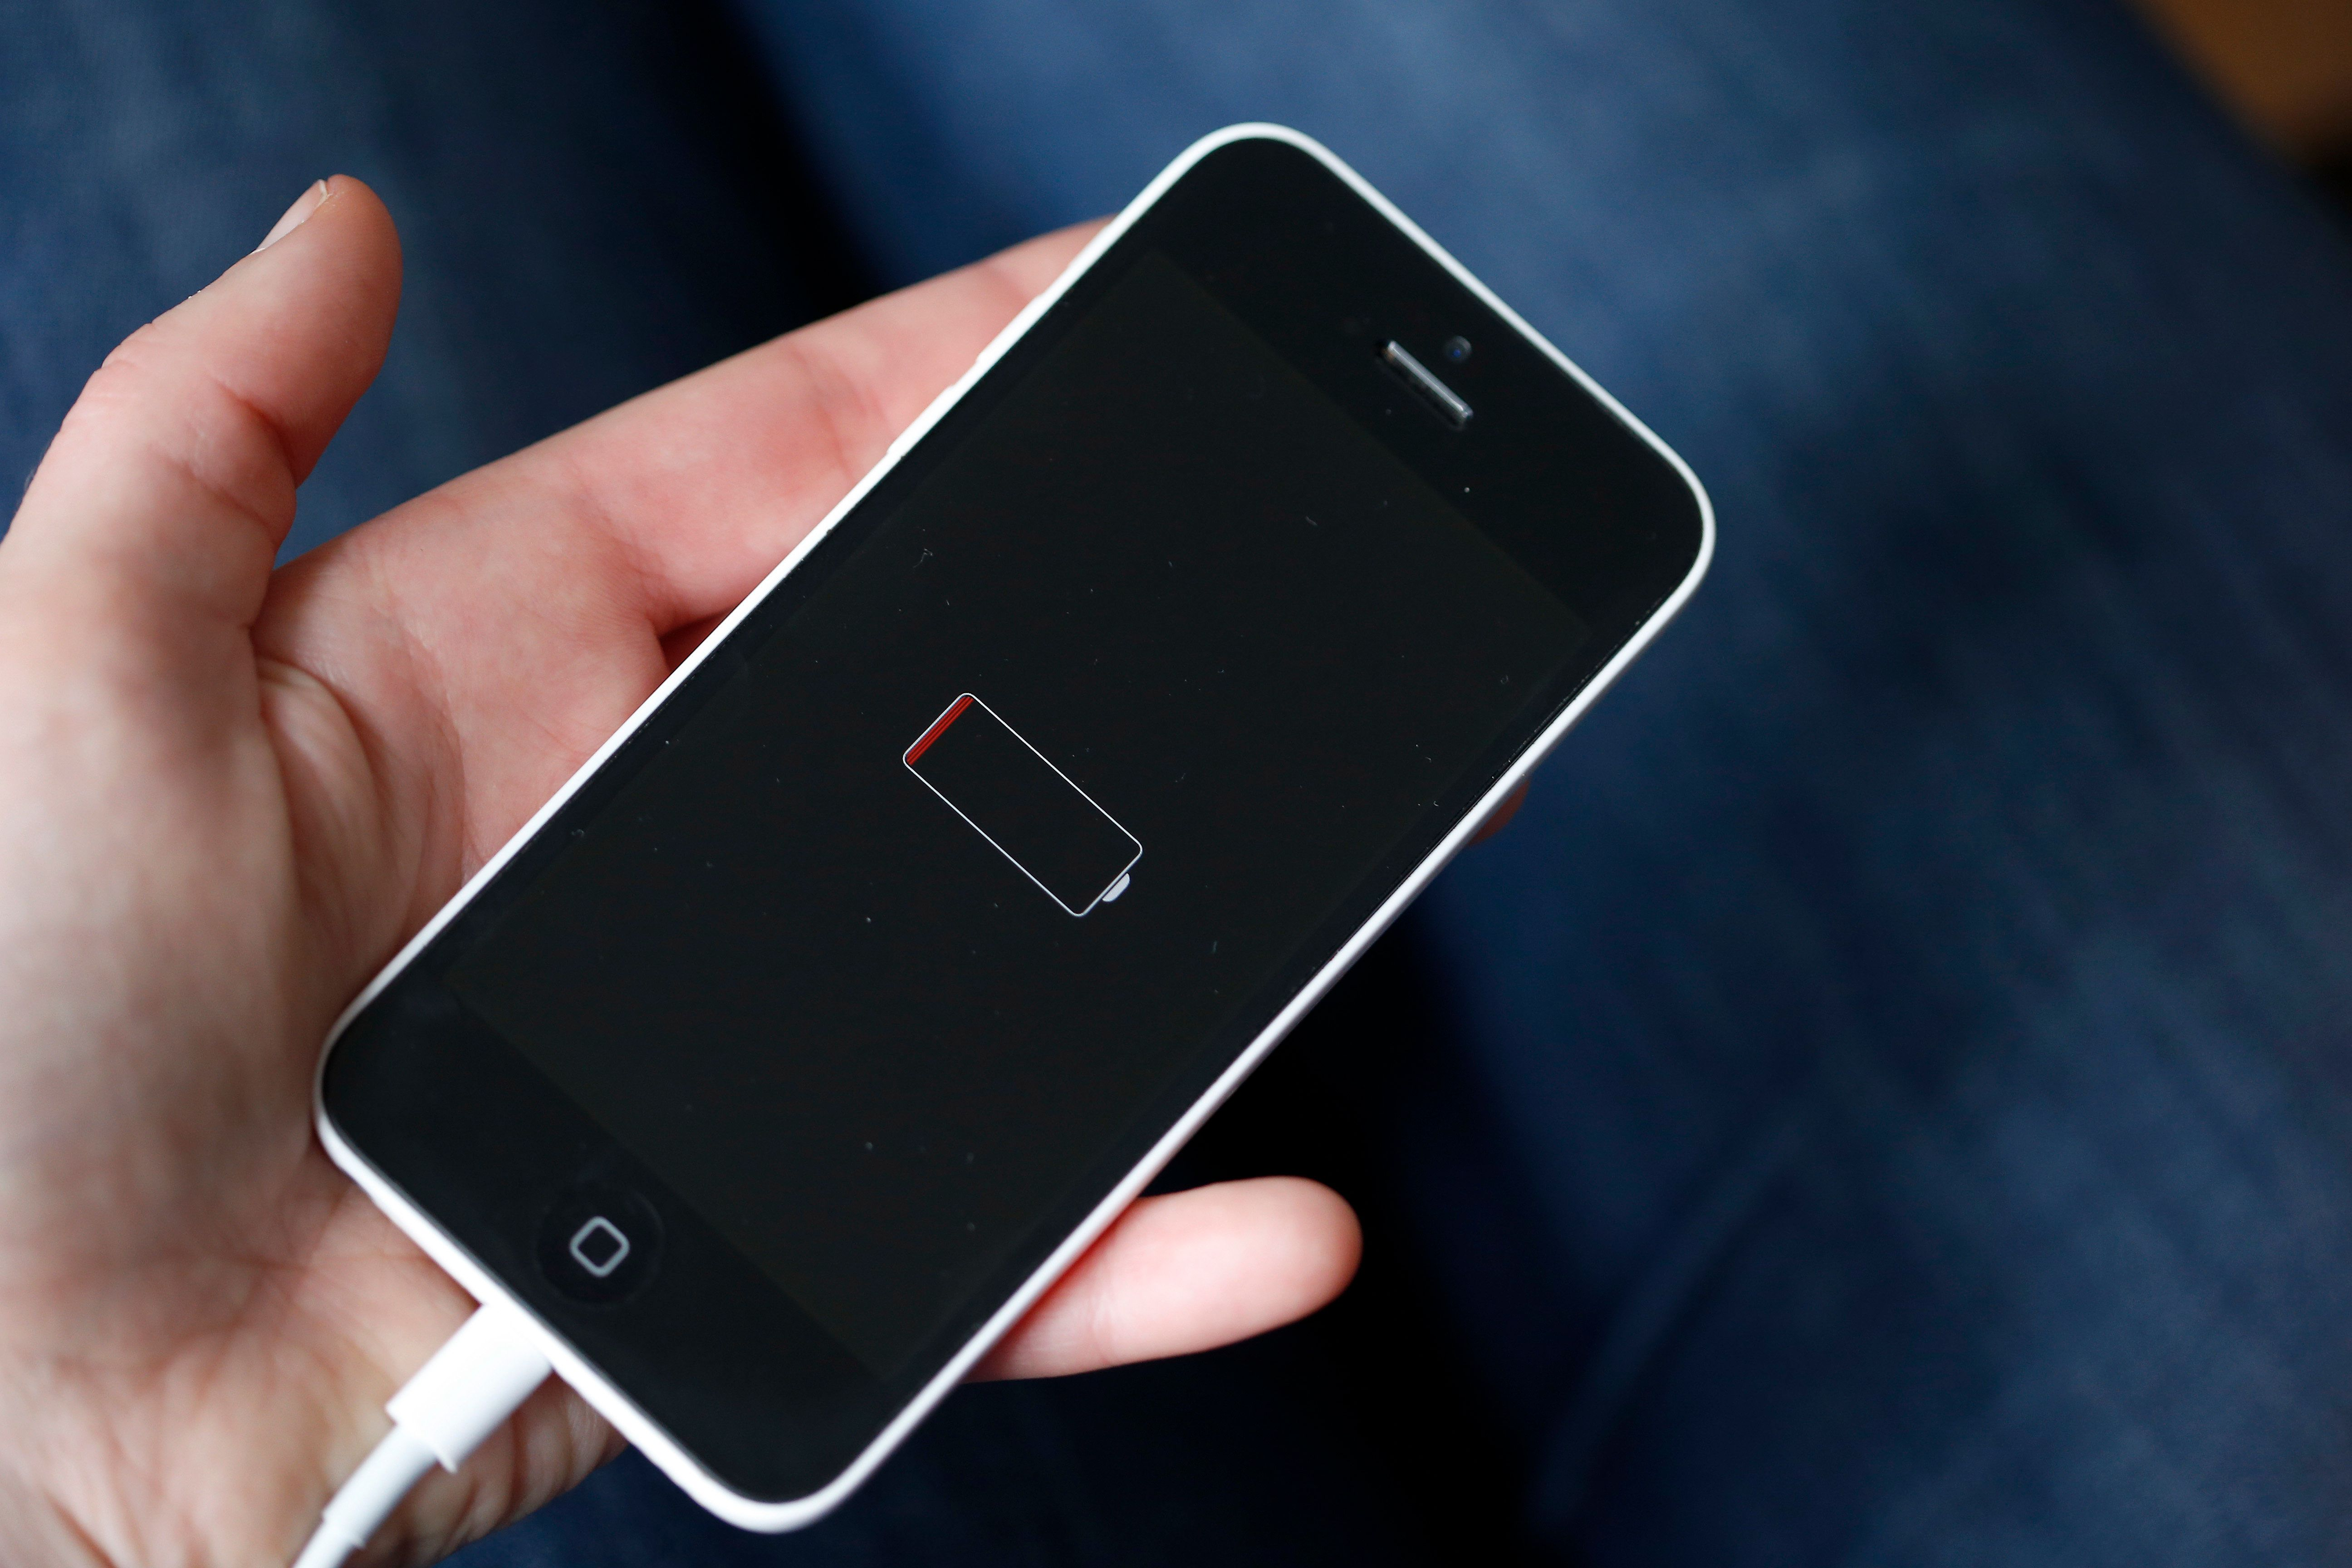 iPhone Battery Always Running Out? Try These Tips To Make It Through The